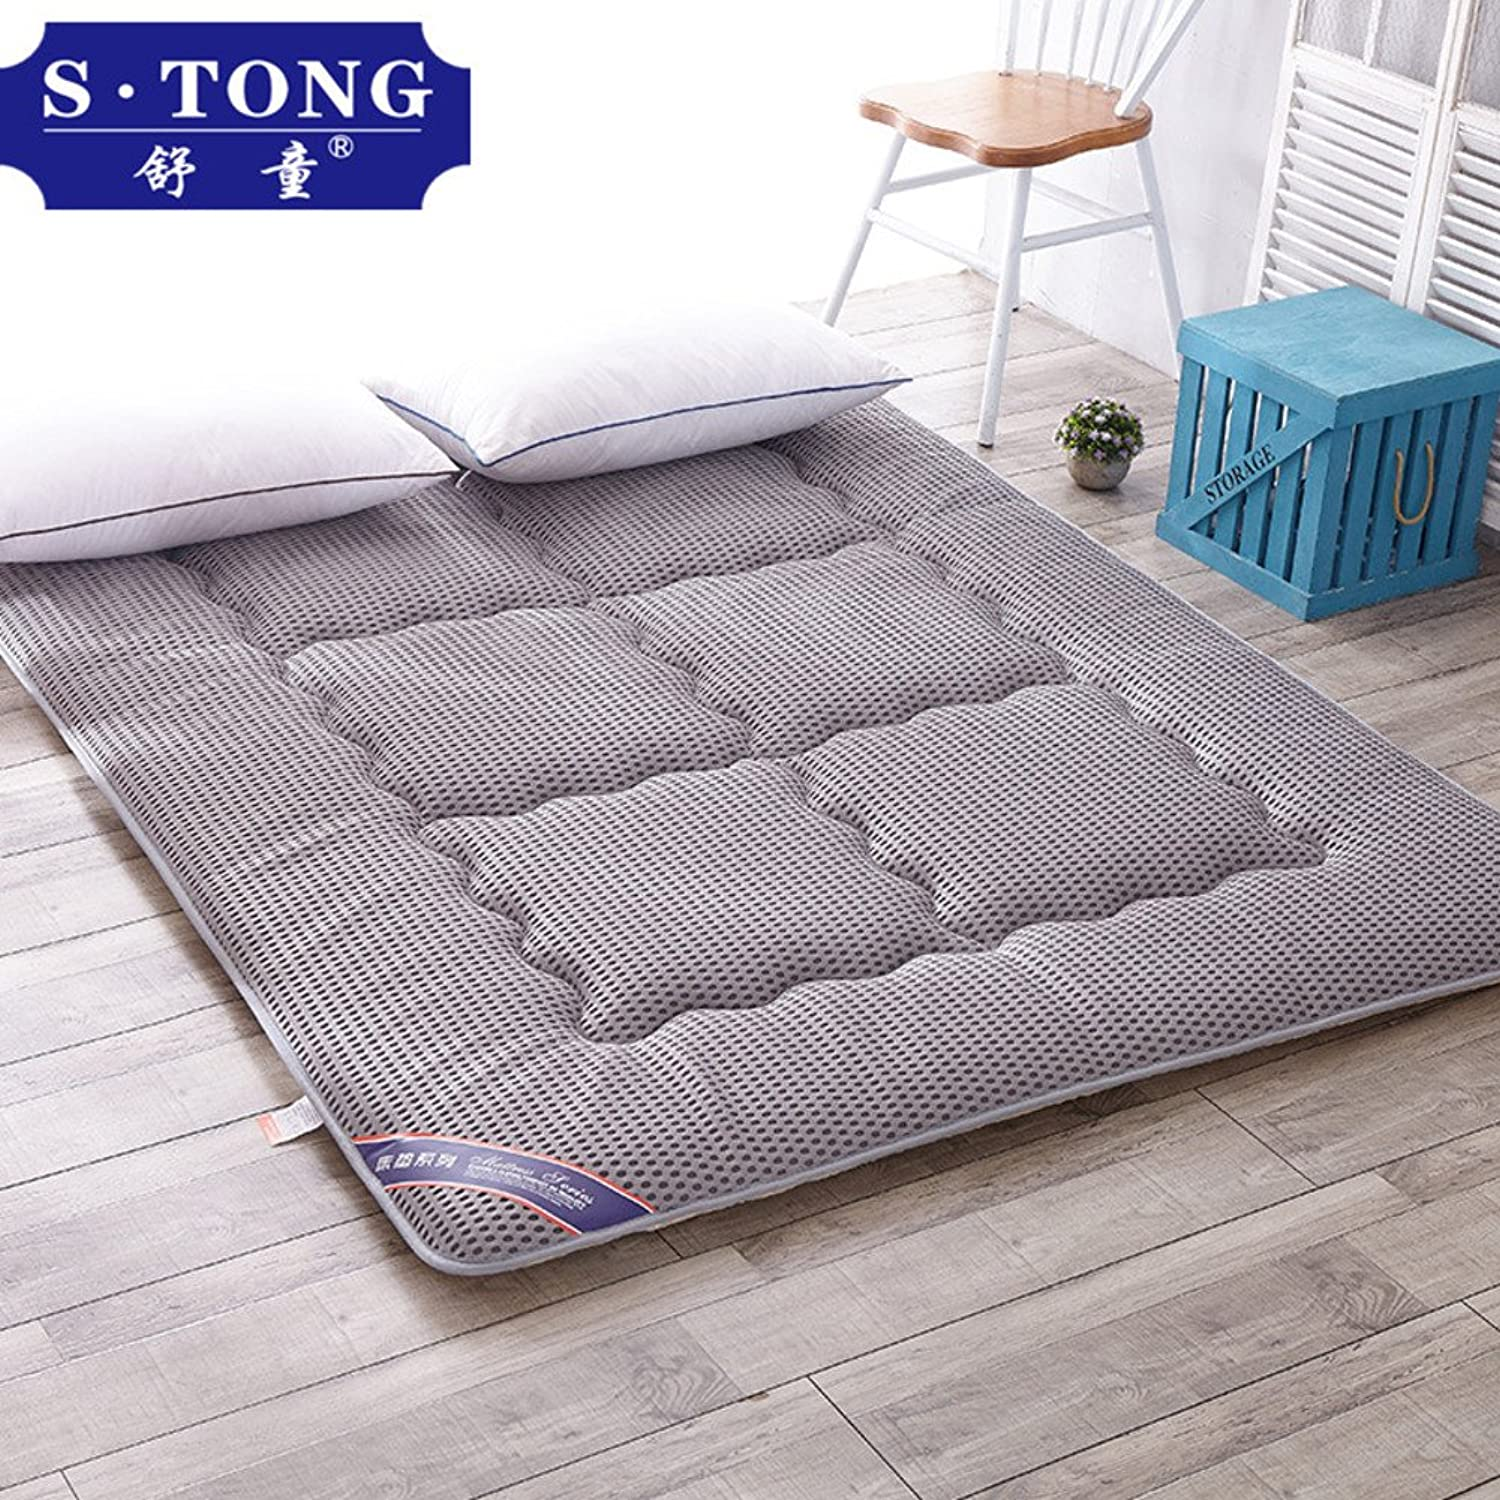 Plaid Mattress Pure color Breathable Thin Tatami Mat Cool pad Student Dorm Room Sleeping mat-J 100x195cm(39x77inch)